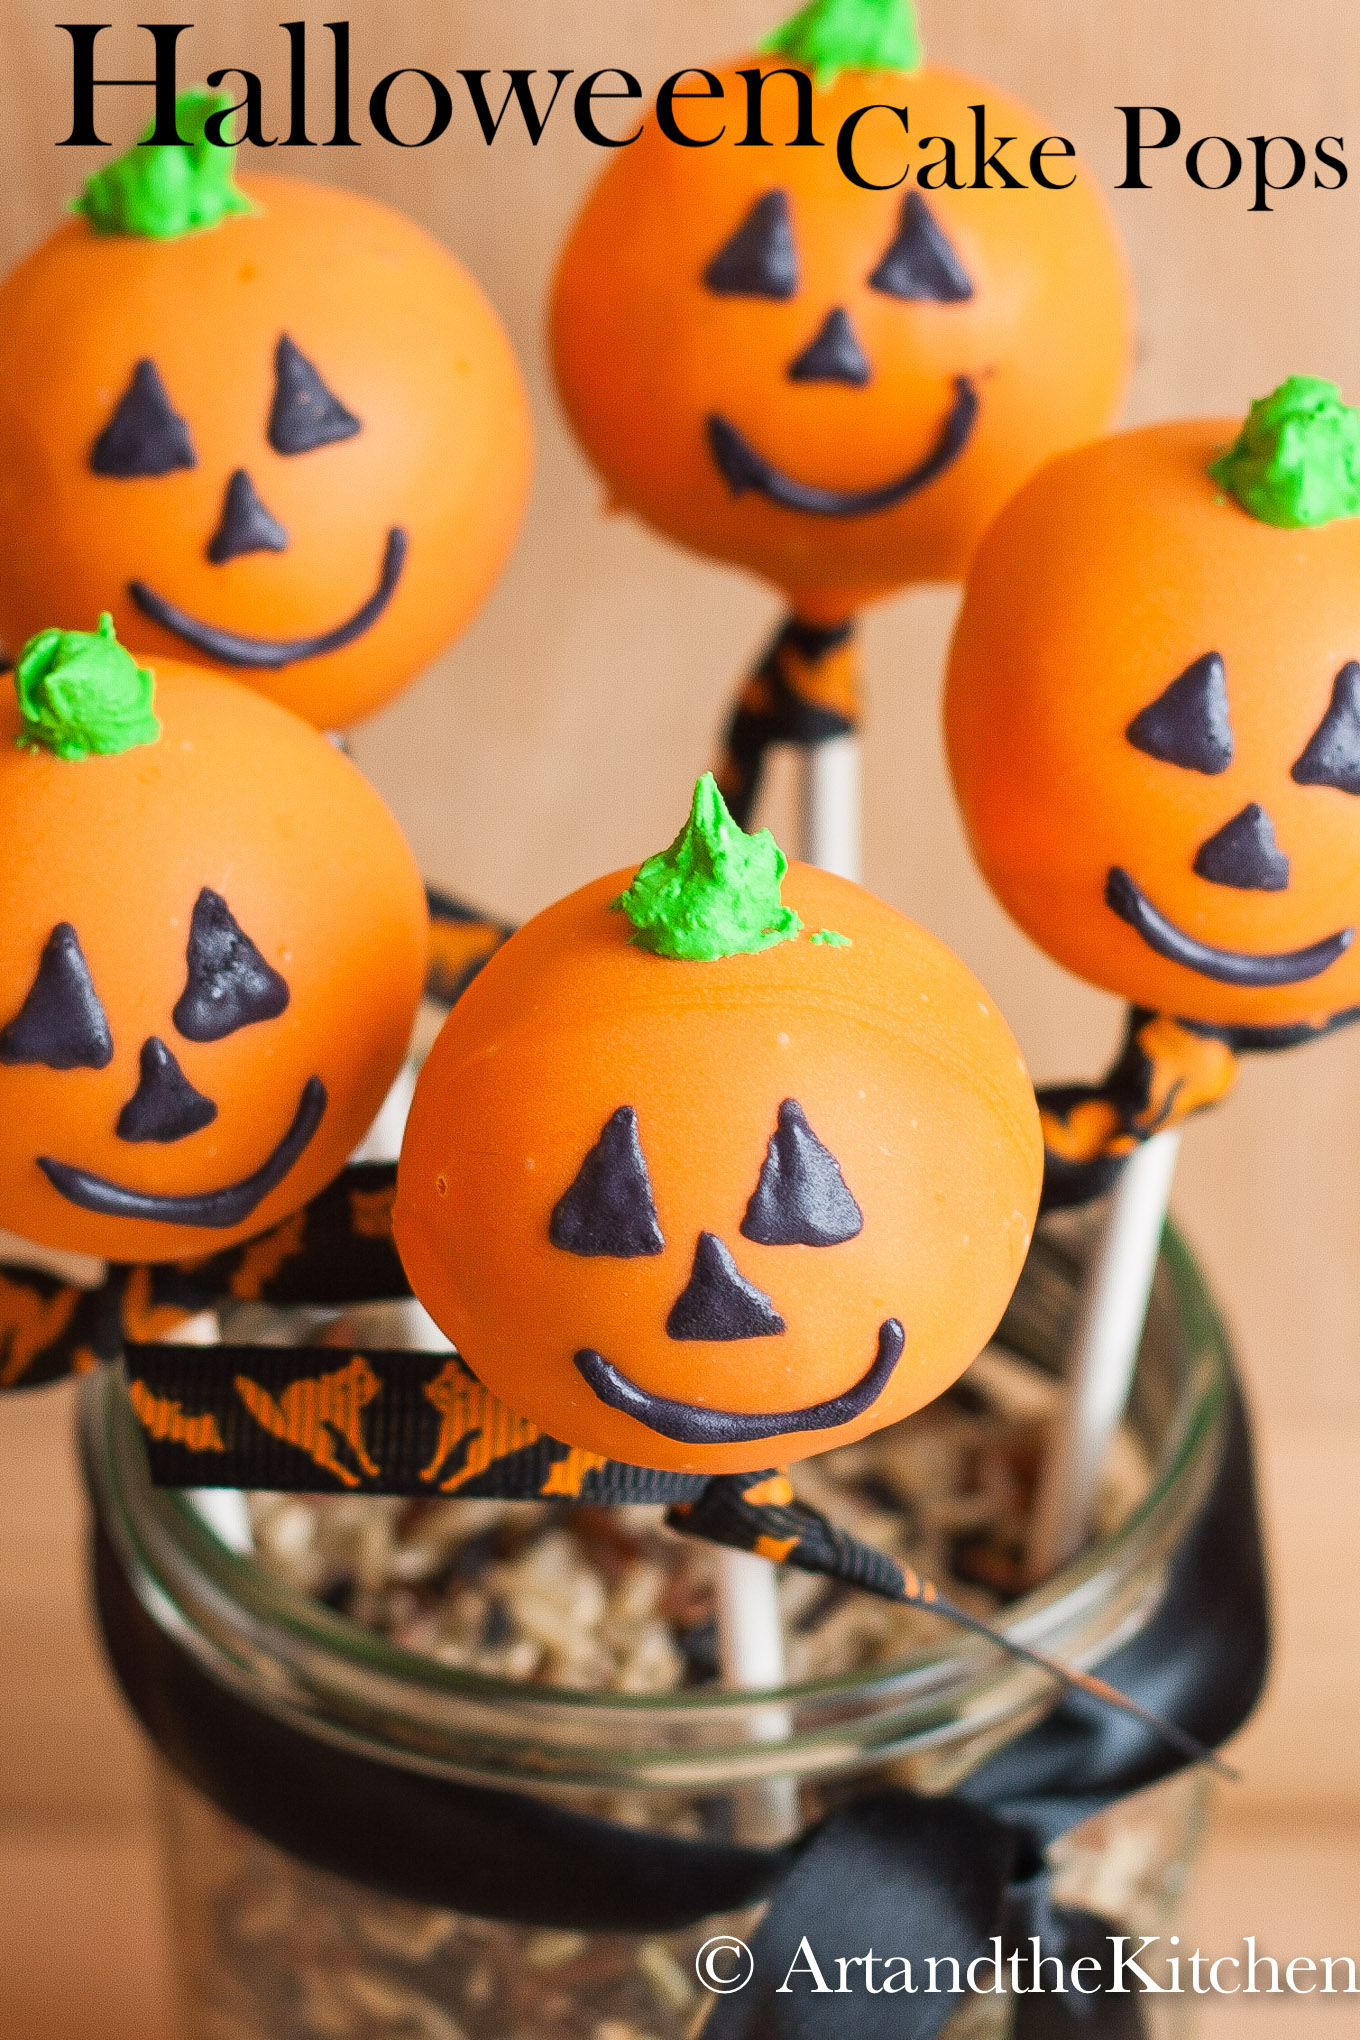 Delicious Halloween Cake Pops decorated like Jack O Lanterns make great treats for a Halloween Party and yummy homemade treats for those special Trick-or-Treaters. via @artandthekitch